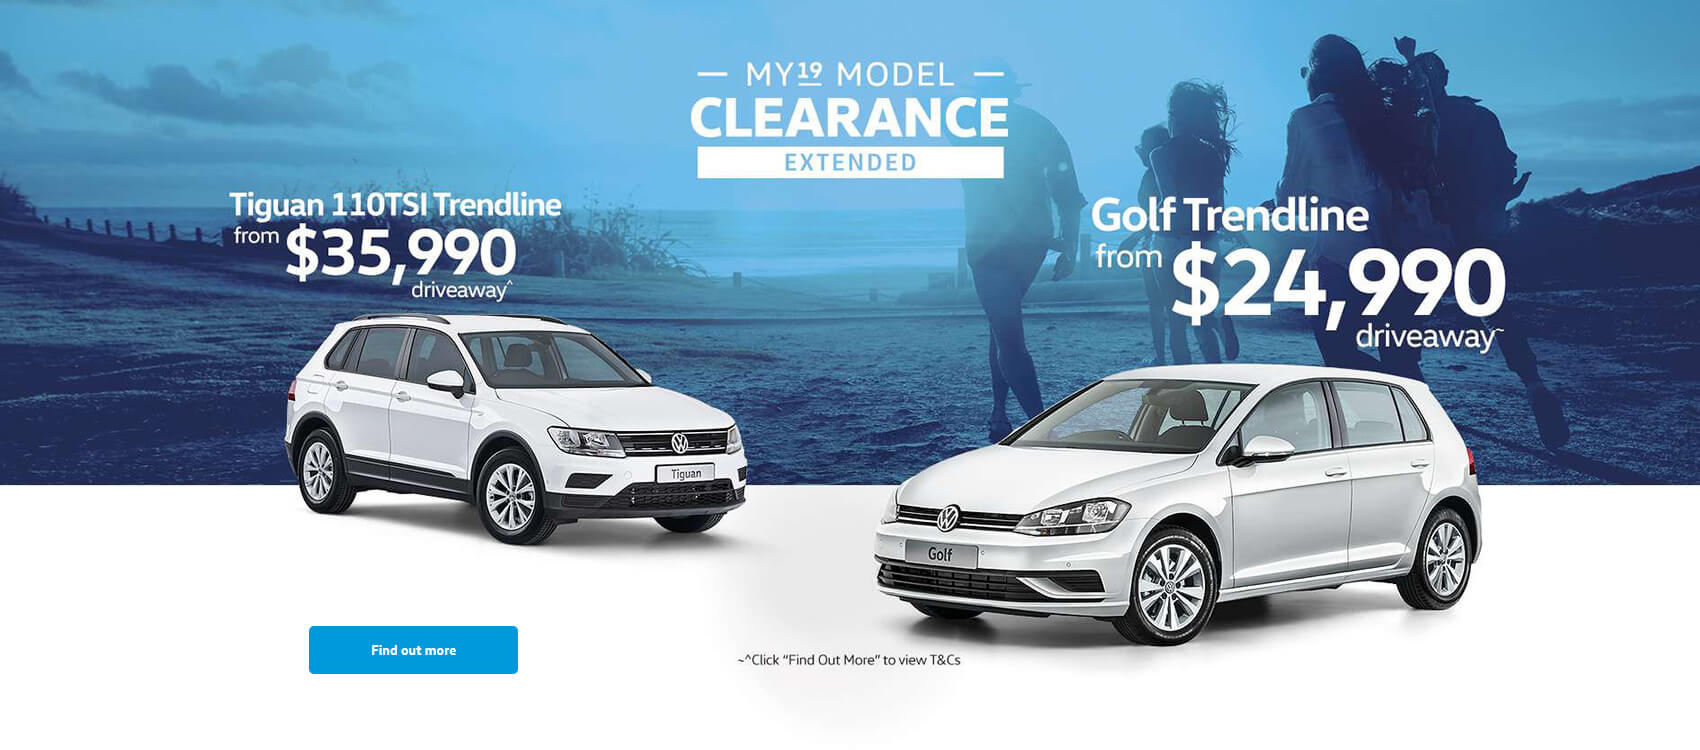 Volkswagen MY19 Model Clearance Extended. Tiguan 110TSI Trendline and Golf Trendline.